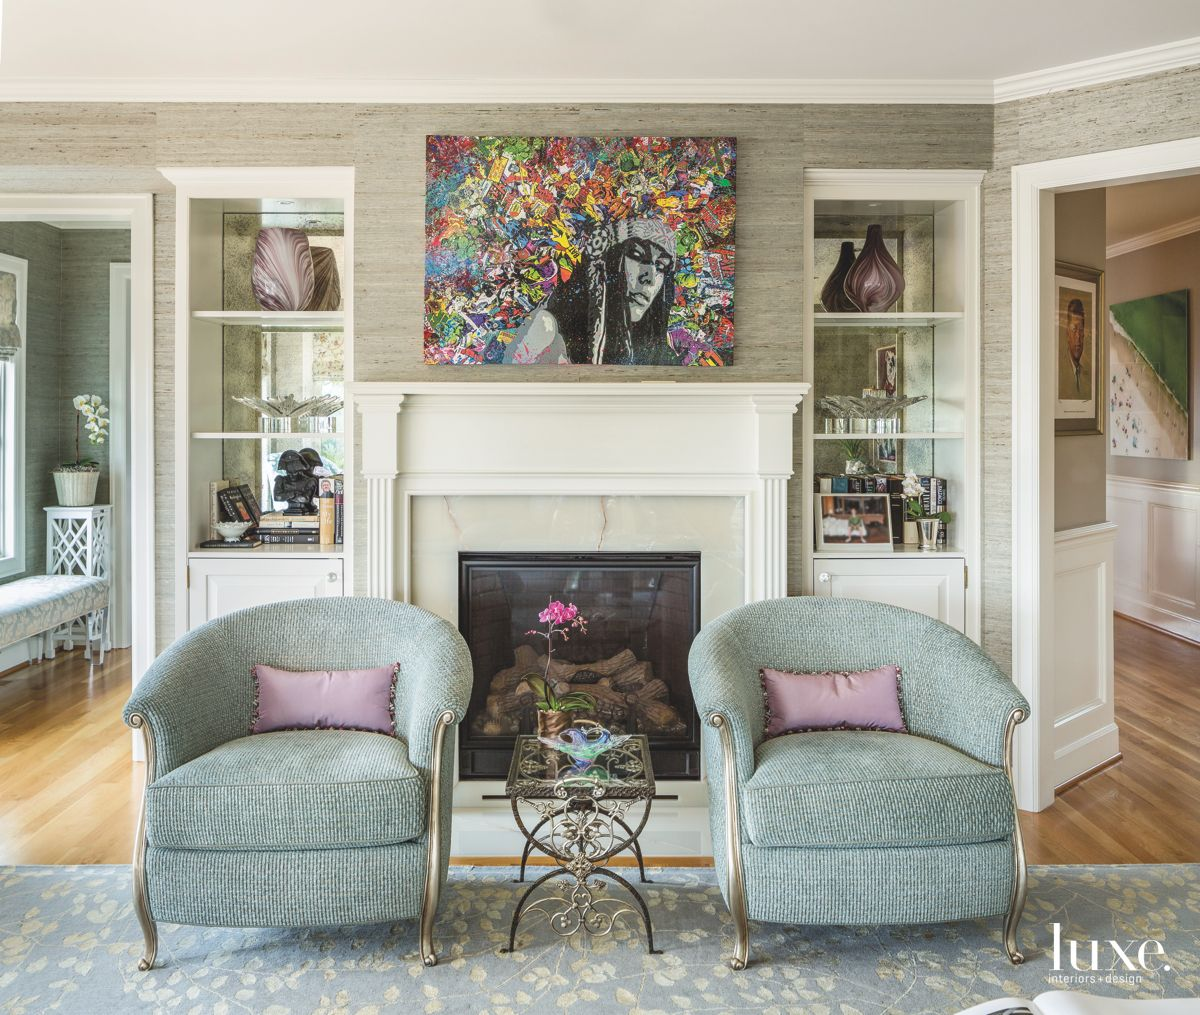 Twin Teal Chair Living Room with Colorful Art and Fireplace